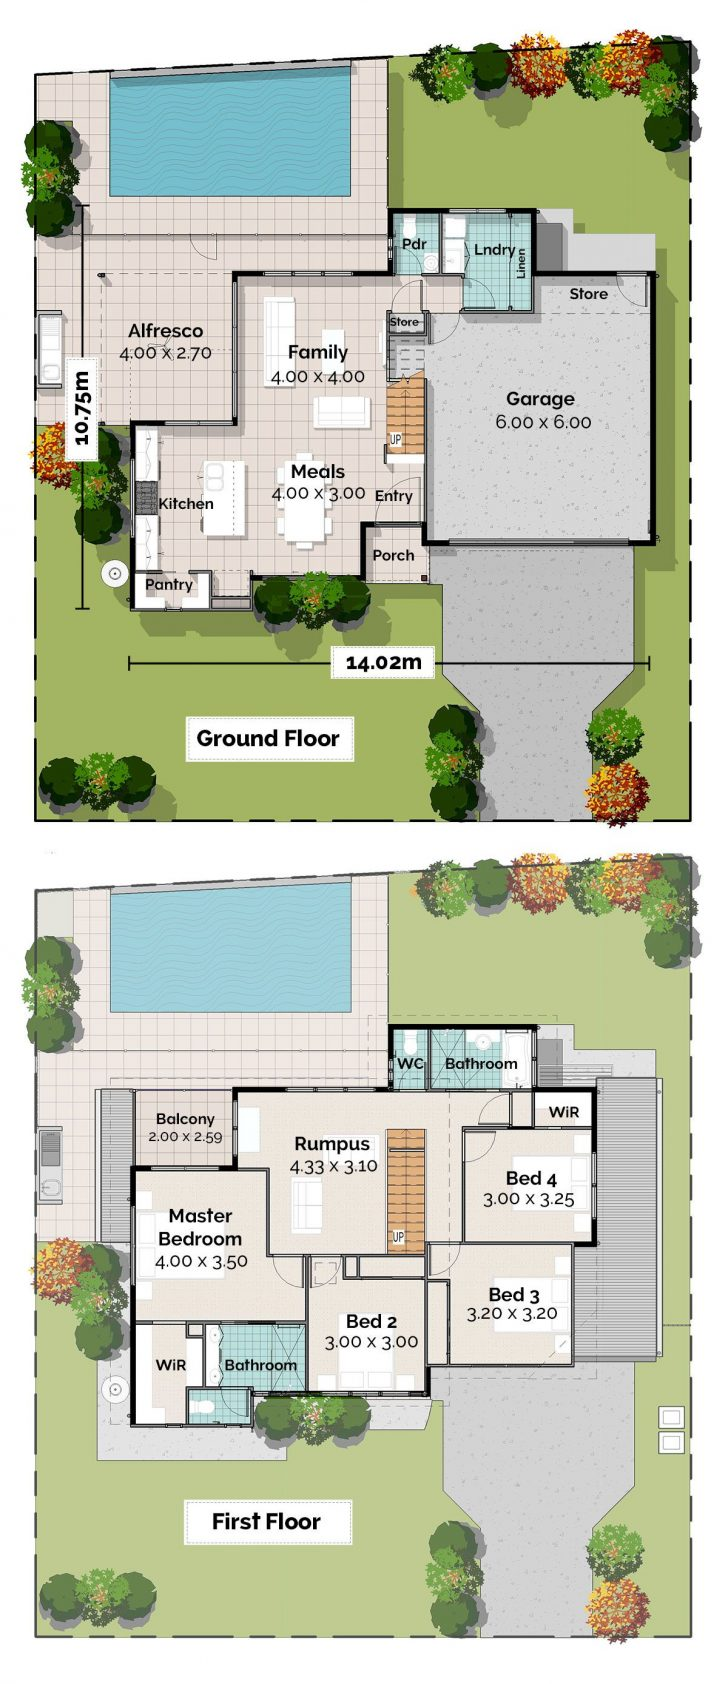 House Plans with Prices 2021